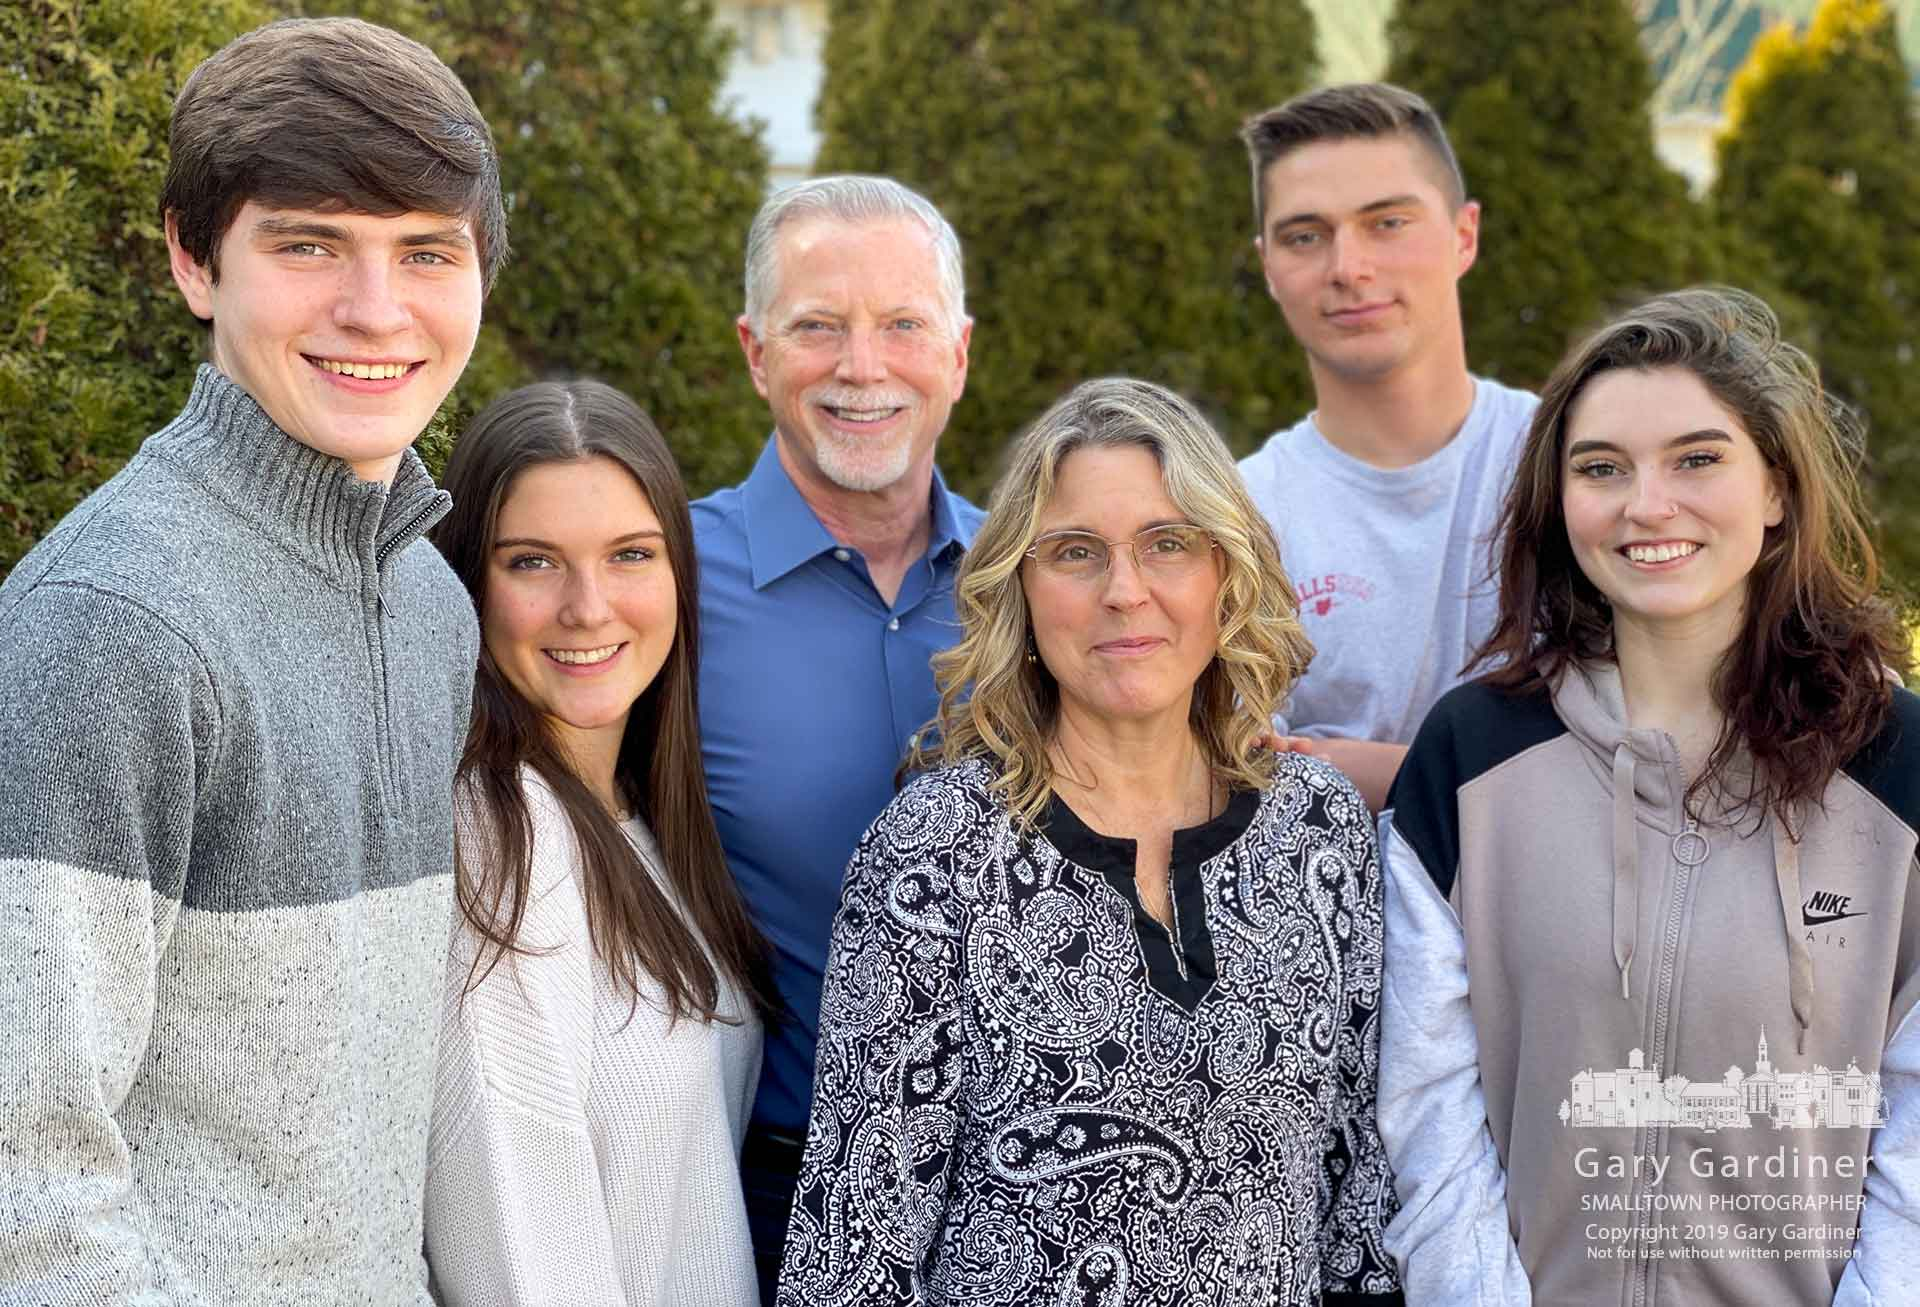 The Robbins family poses for a quick family portrait during an afternoon break in Christmas celebration at their home. My Final Photo for Dec. 21, 2019.